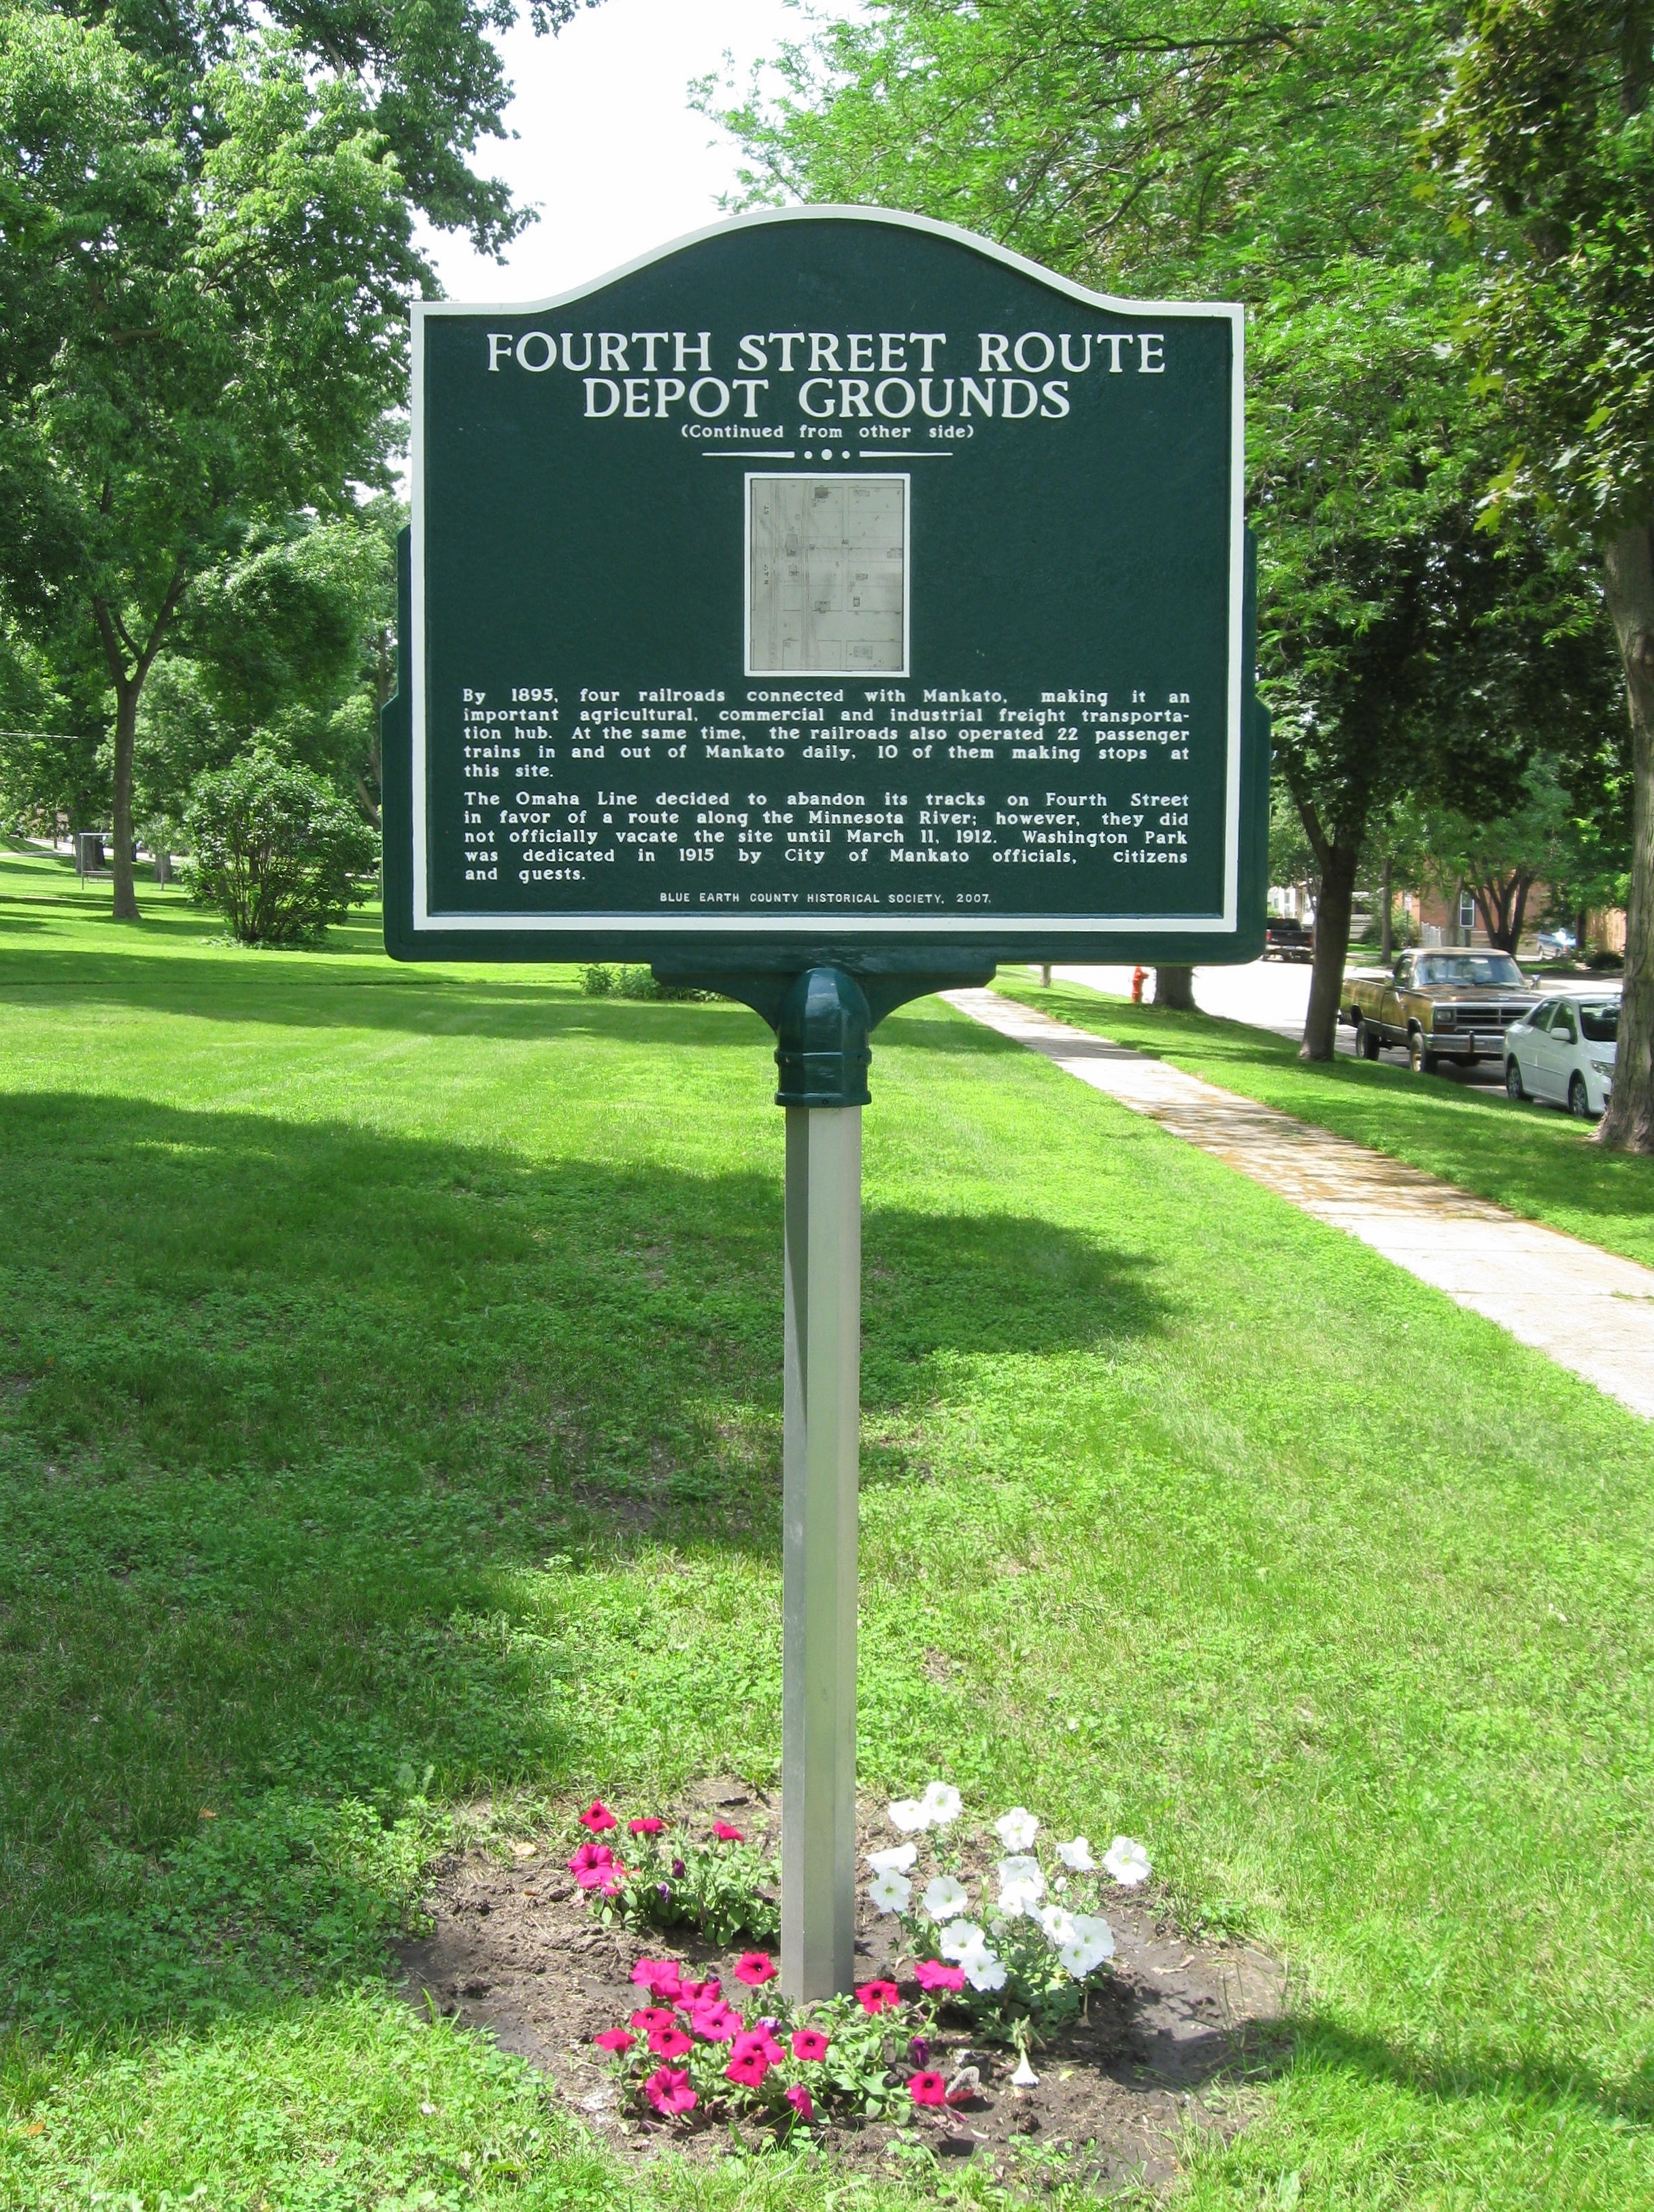 Washington Park / Fourth Street Route Depot Grounds Marker